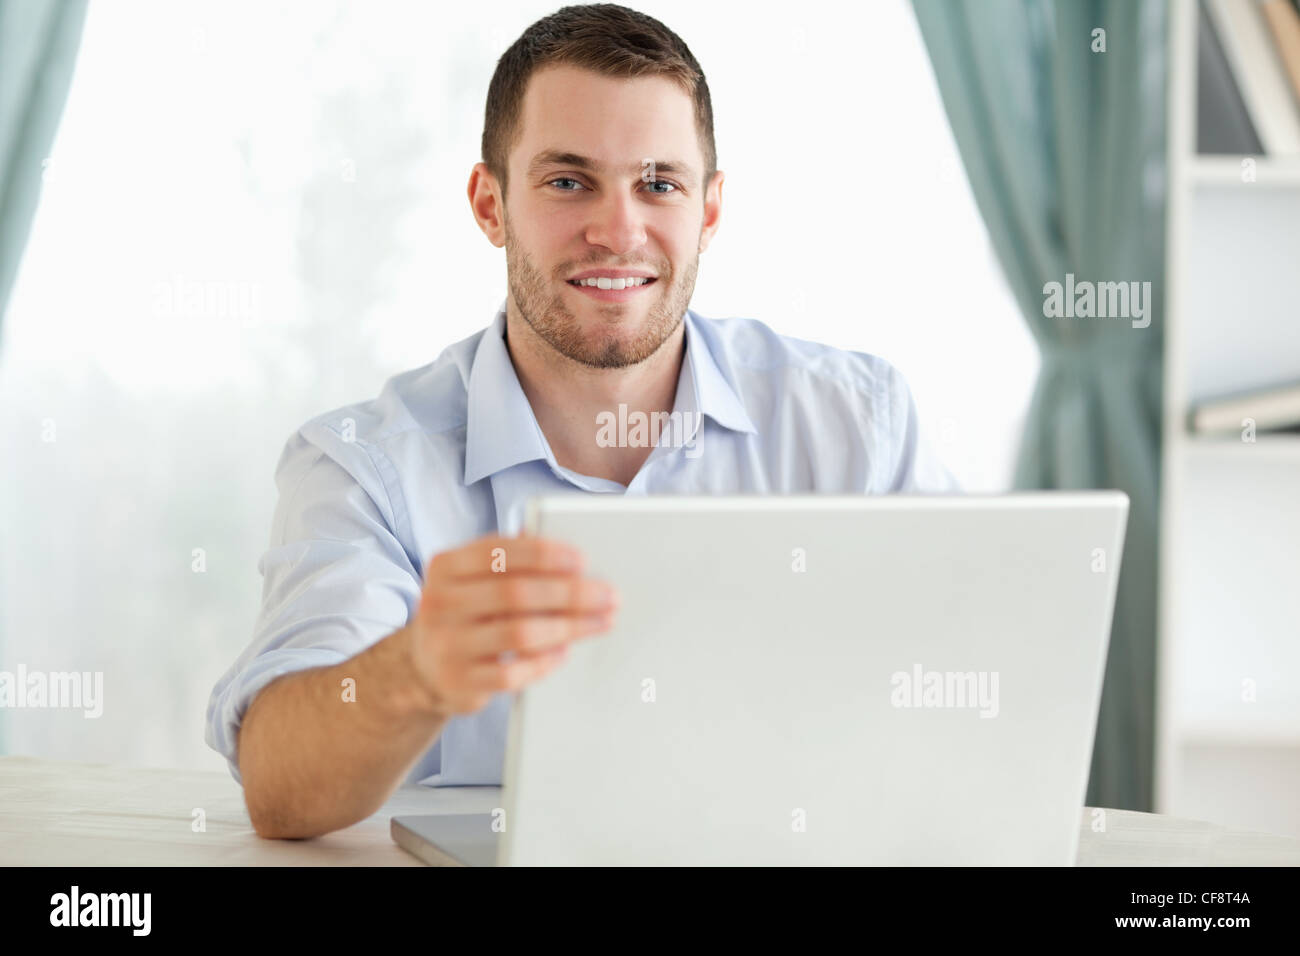 Smiling Businessman Sitting Behind A Table On His Laptop